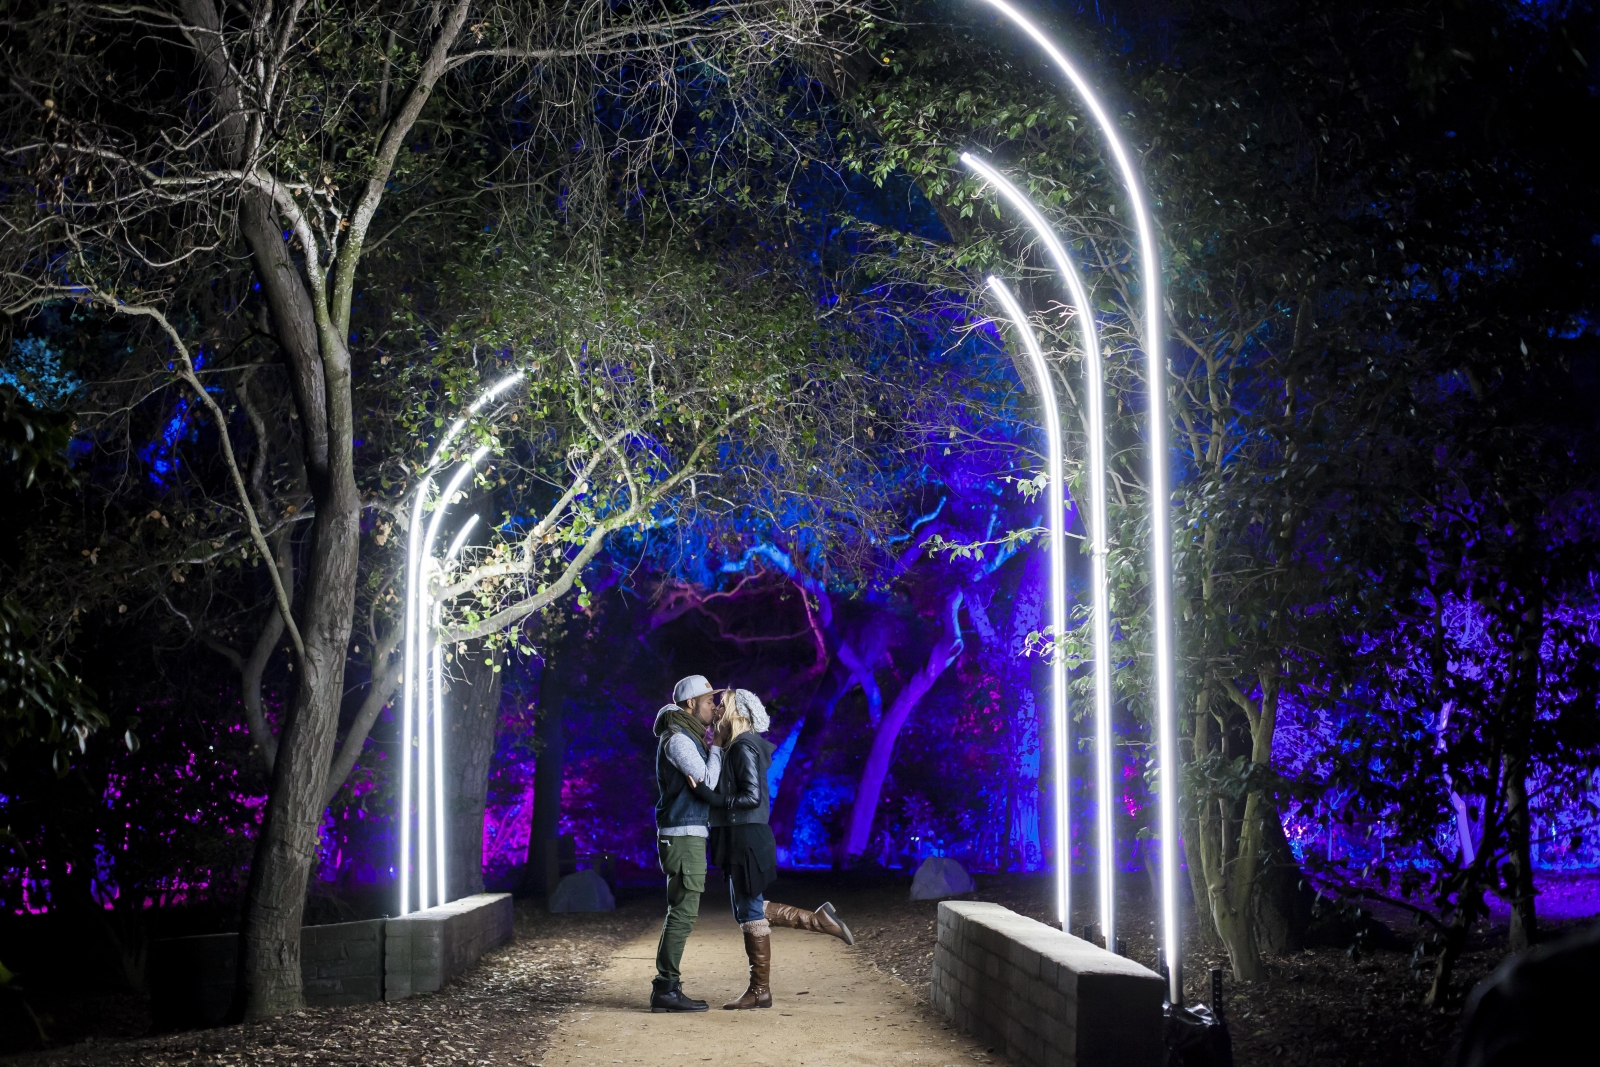 Lightswitch and 4wall transform descanso gardens into enchanted descanso gardens famous camellias are highlighted in shades of blue and red choreographed to ambient music in the fantasy forest display aloadofball Gallery